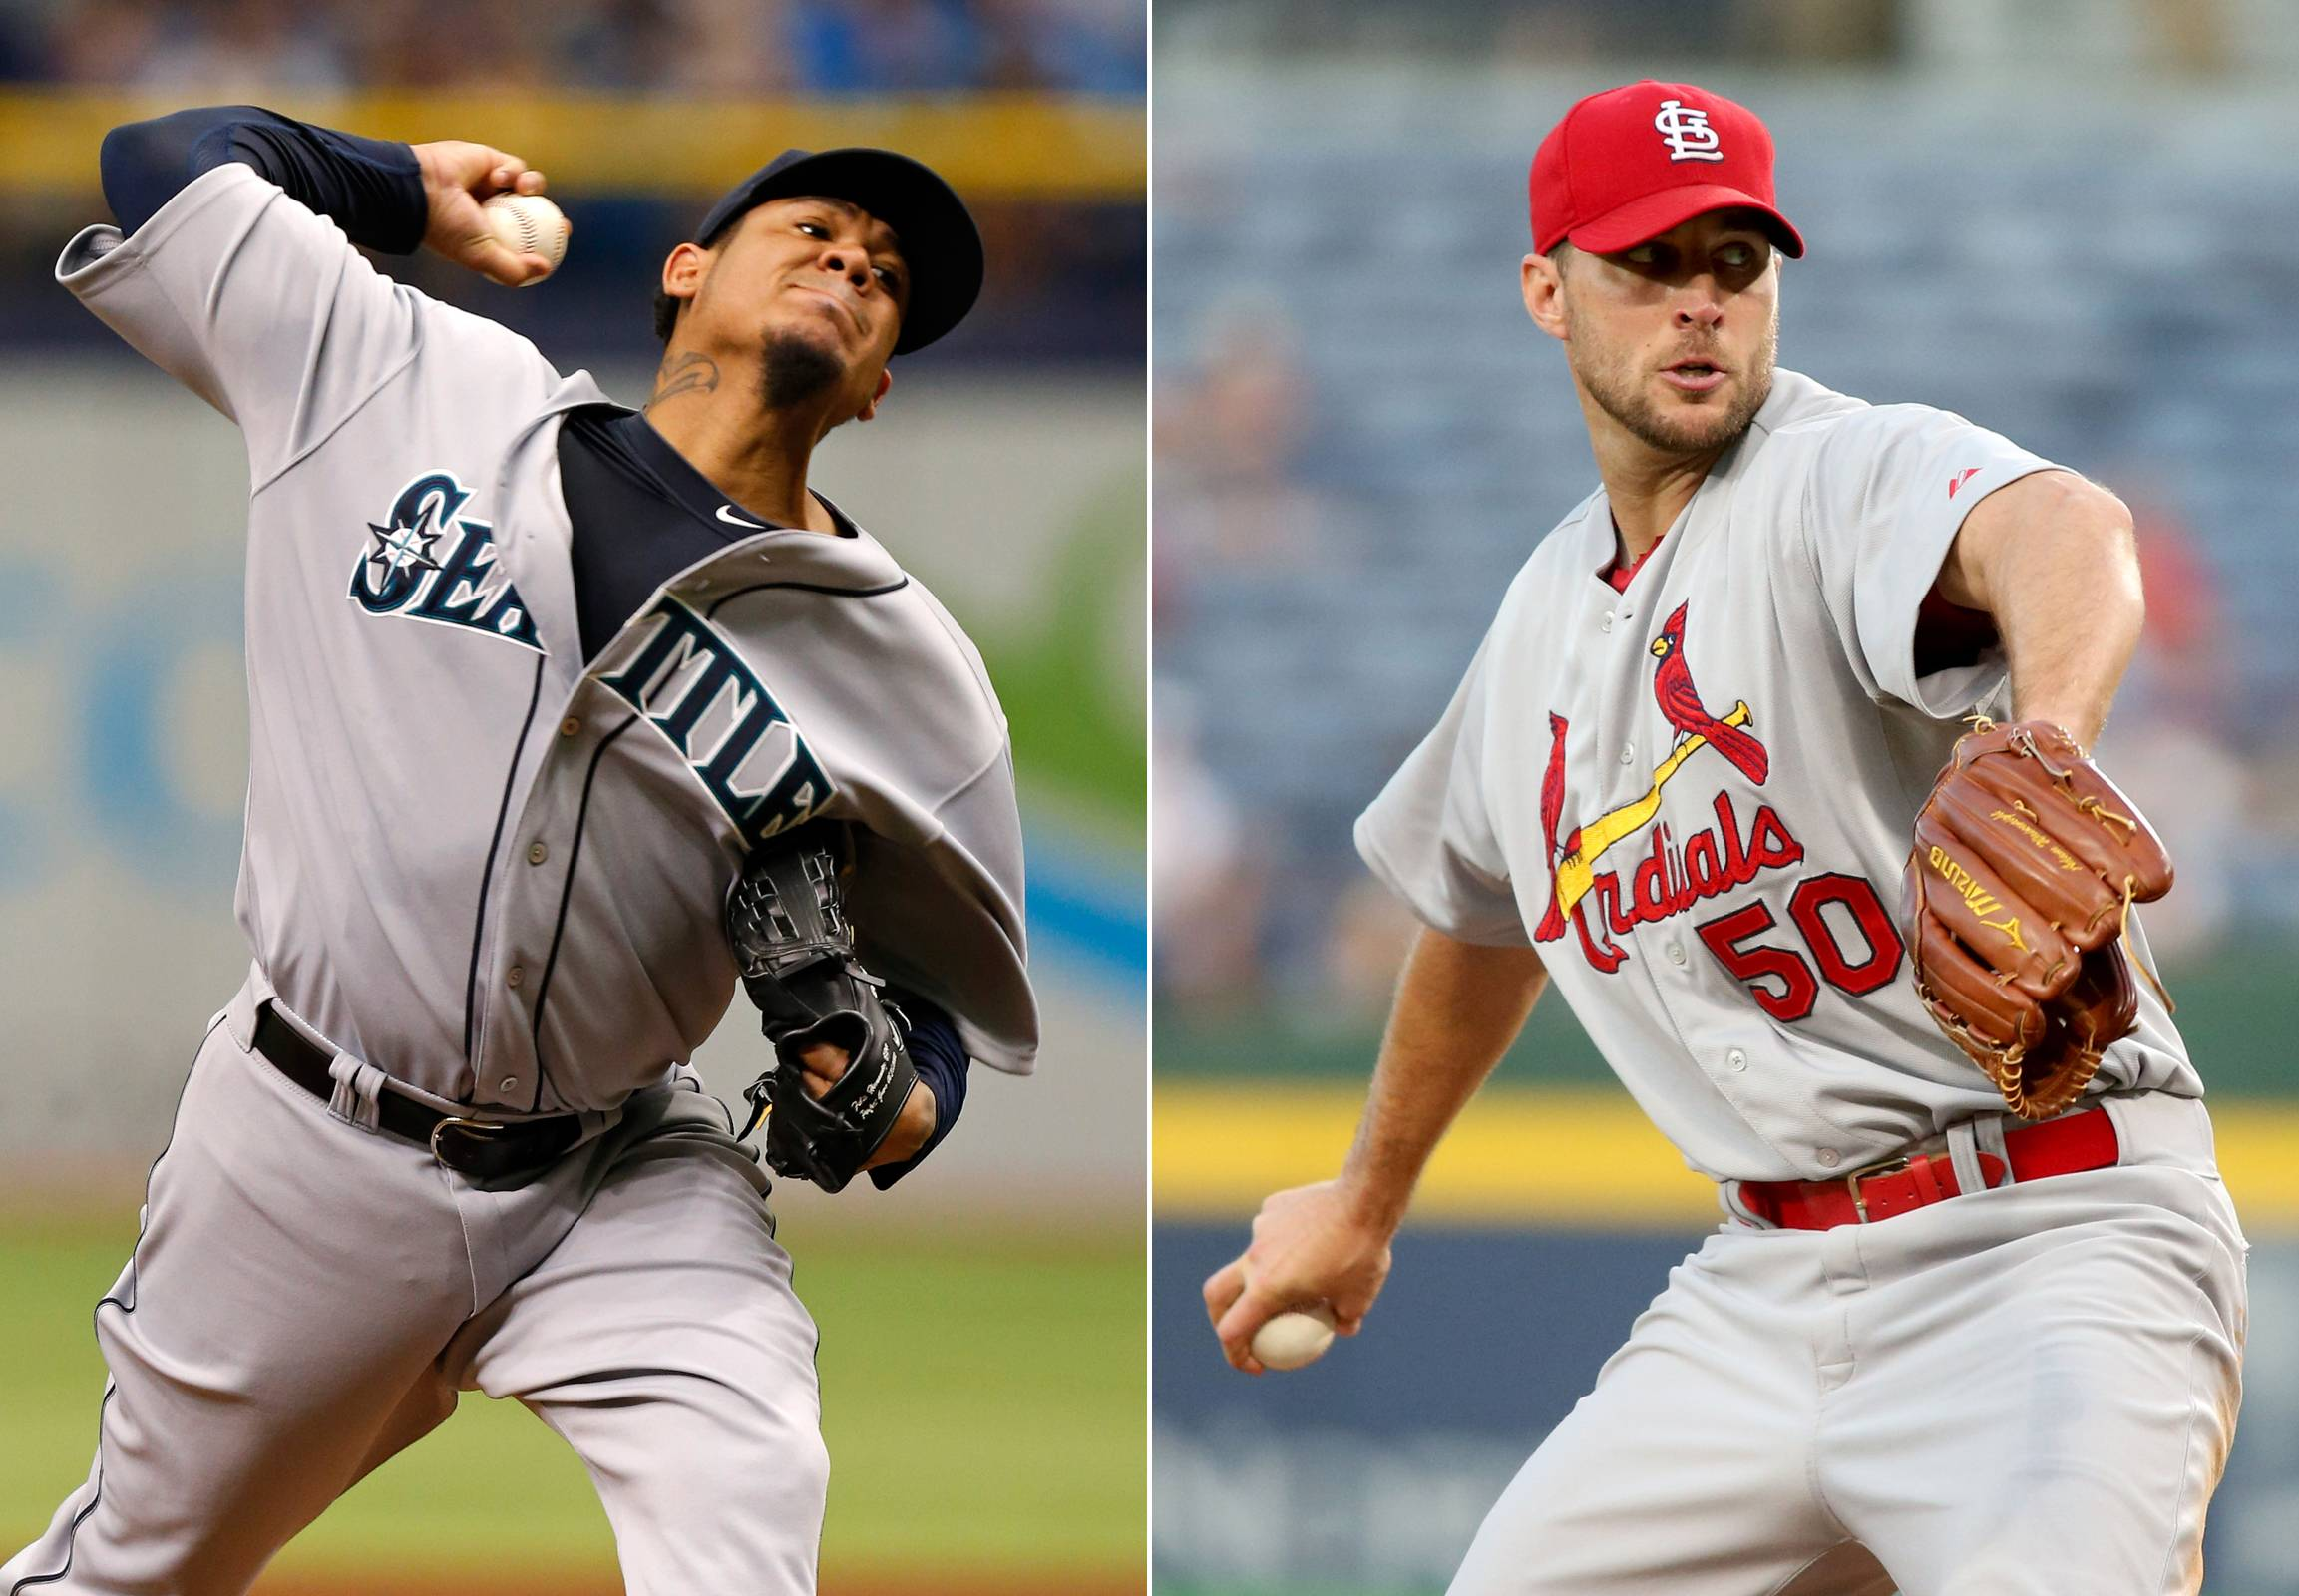 If the winning all-star manager were given $1 million when his team won, they would be more inclined to allow starting pitchers Felix Hernandez, left, and Adam Wainwright go 3 innings, according to Mike Imrem.